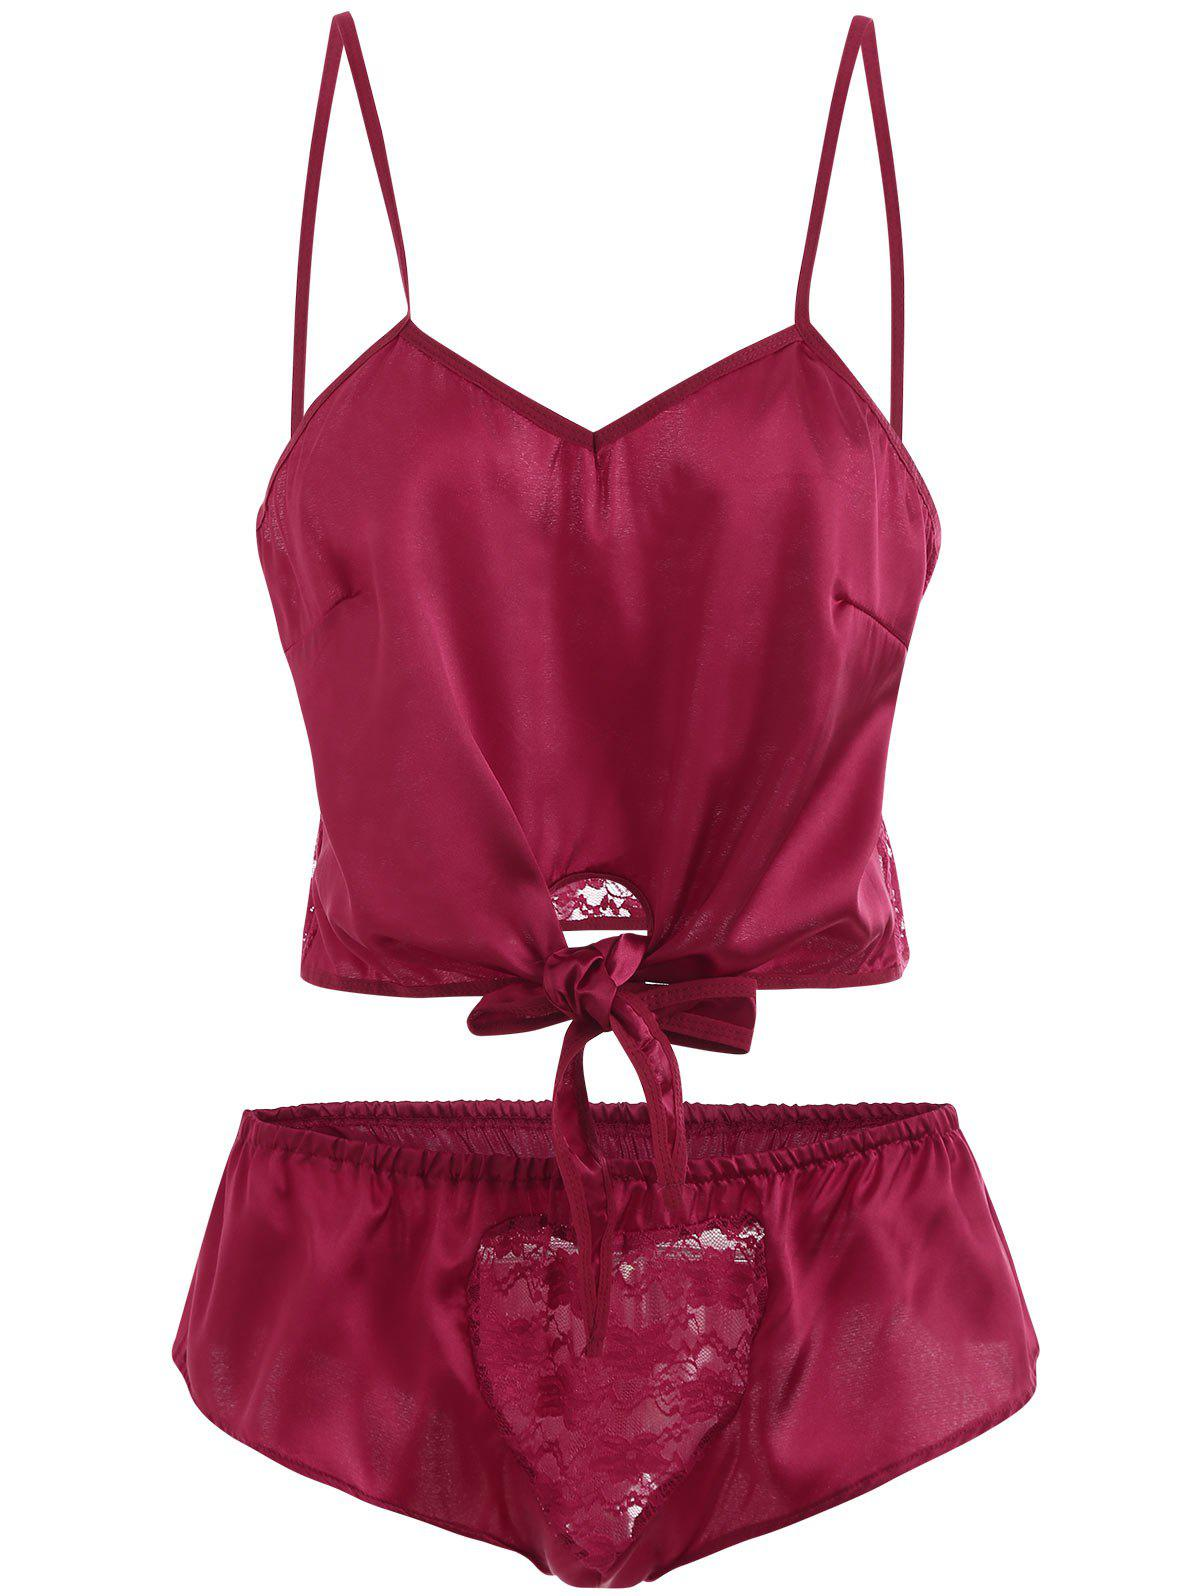 New Front Tied Lace Panel Lingerie Set